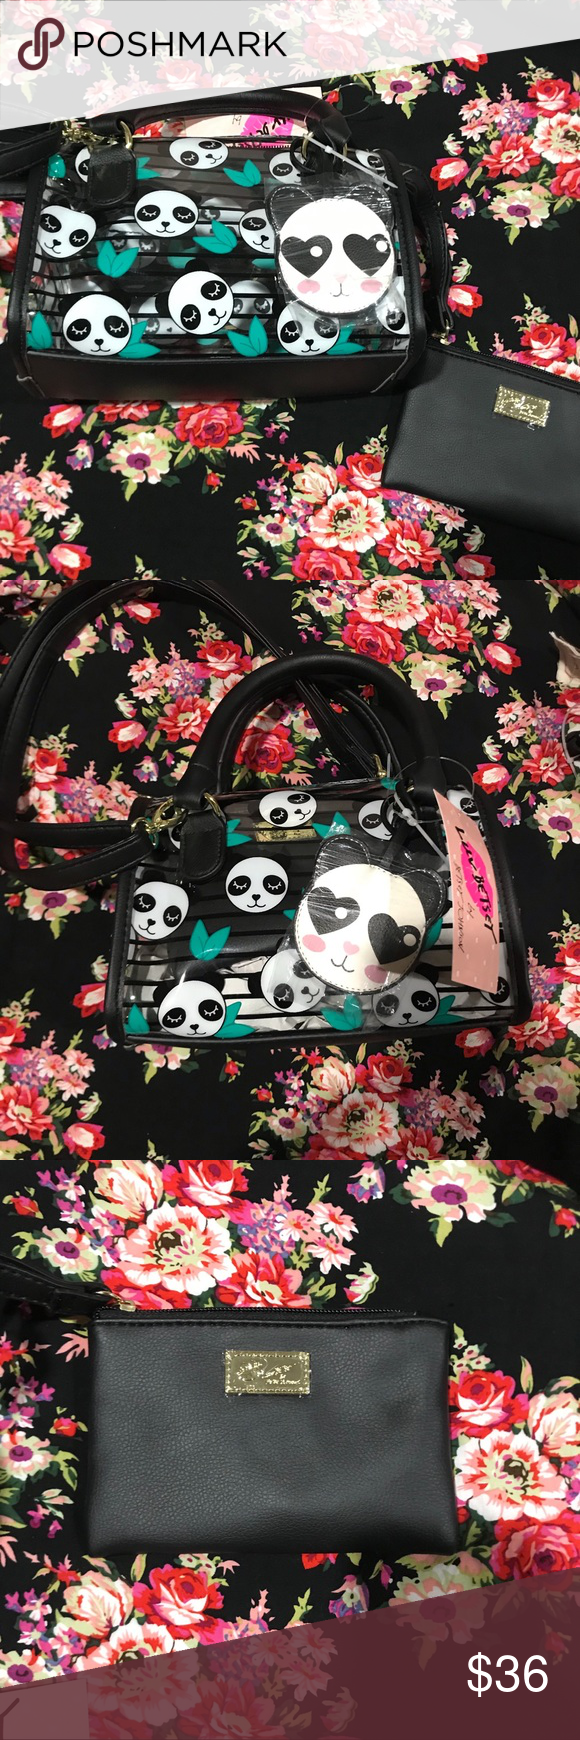 a6514cb00 Betsey Johnson Clear Panda Stripe Tote Bag This cutie patootie by Betsey  Johnson is made